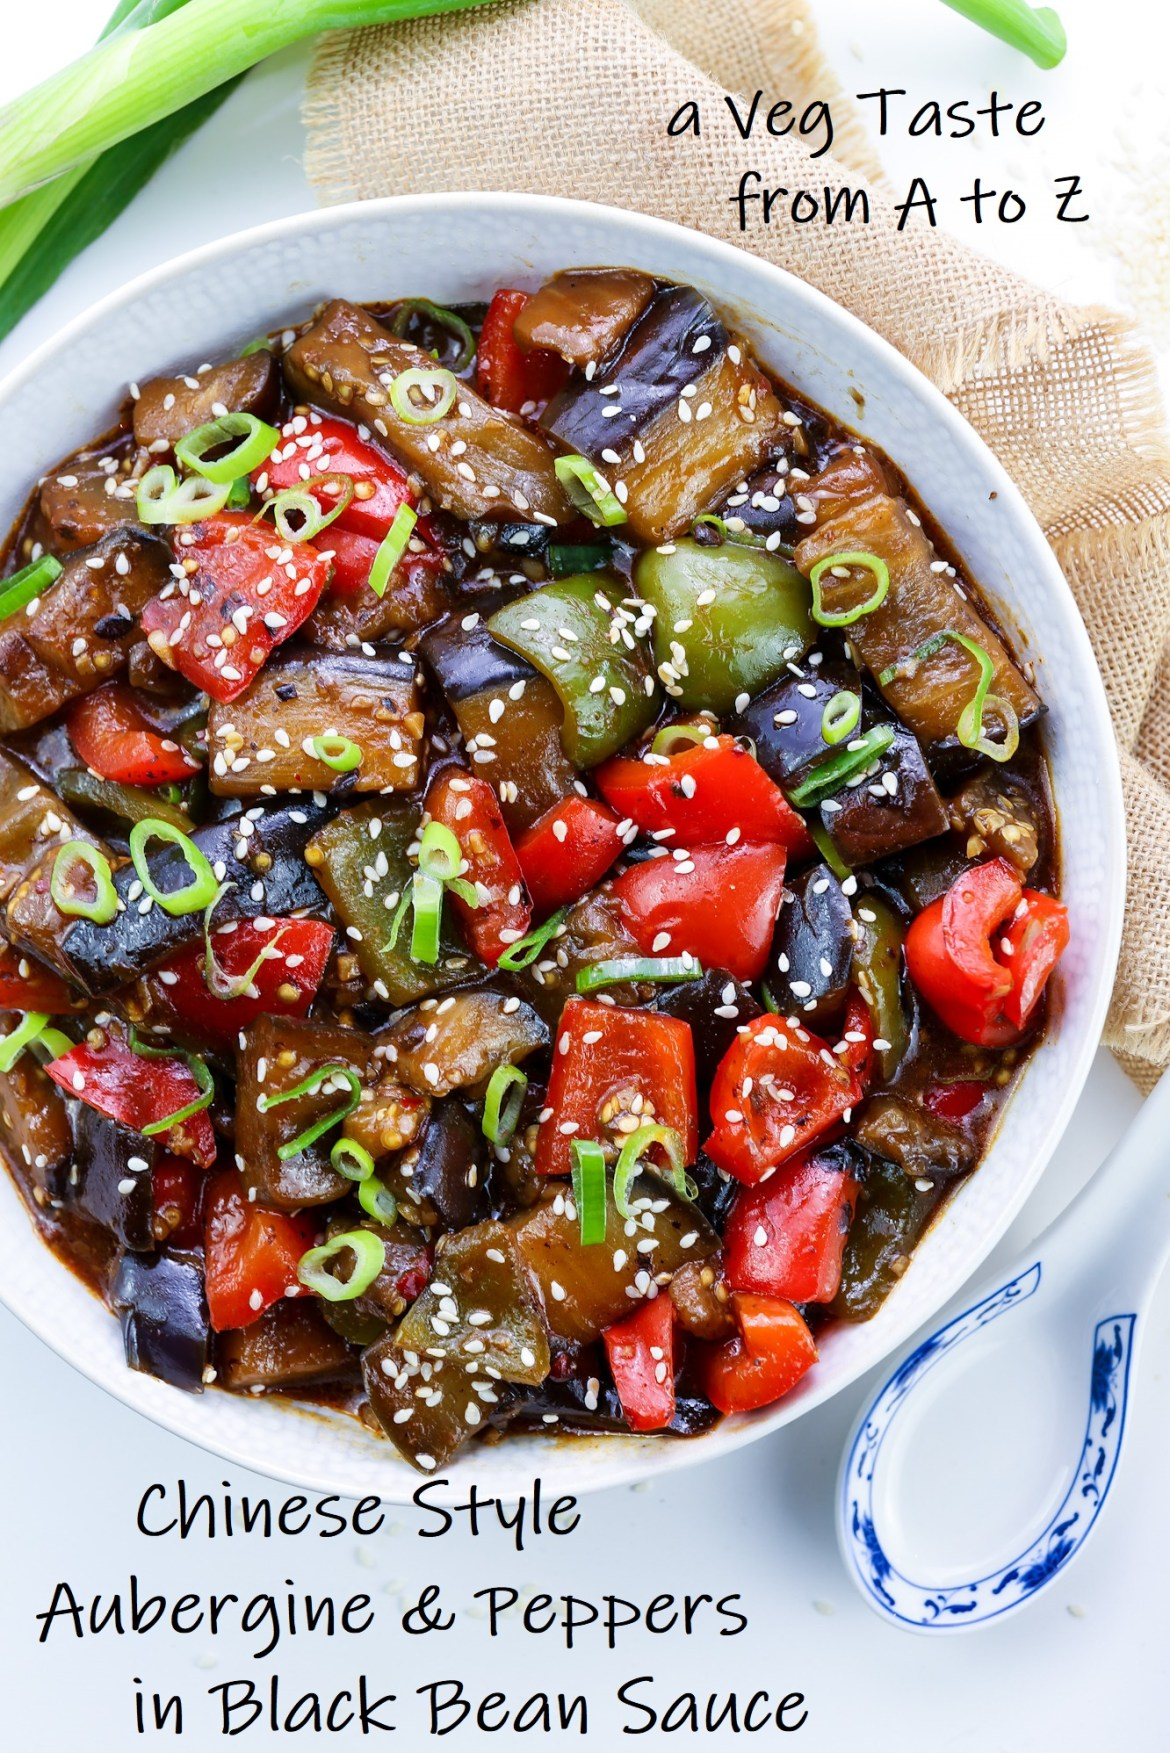 Vegan Aubergine & Peppers in Black Bean Sauce in a white bowl topped with green onions and sesame seeds and black text over image with the name of the recipe